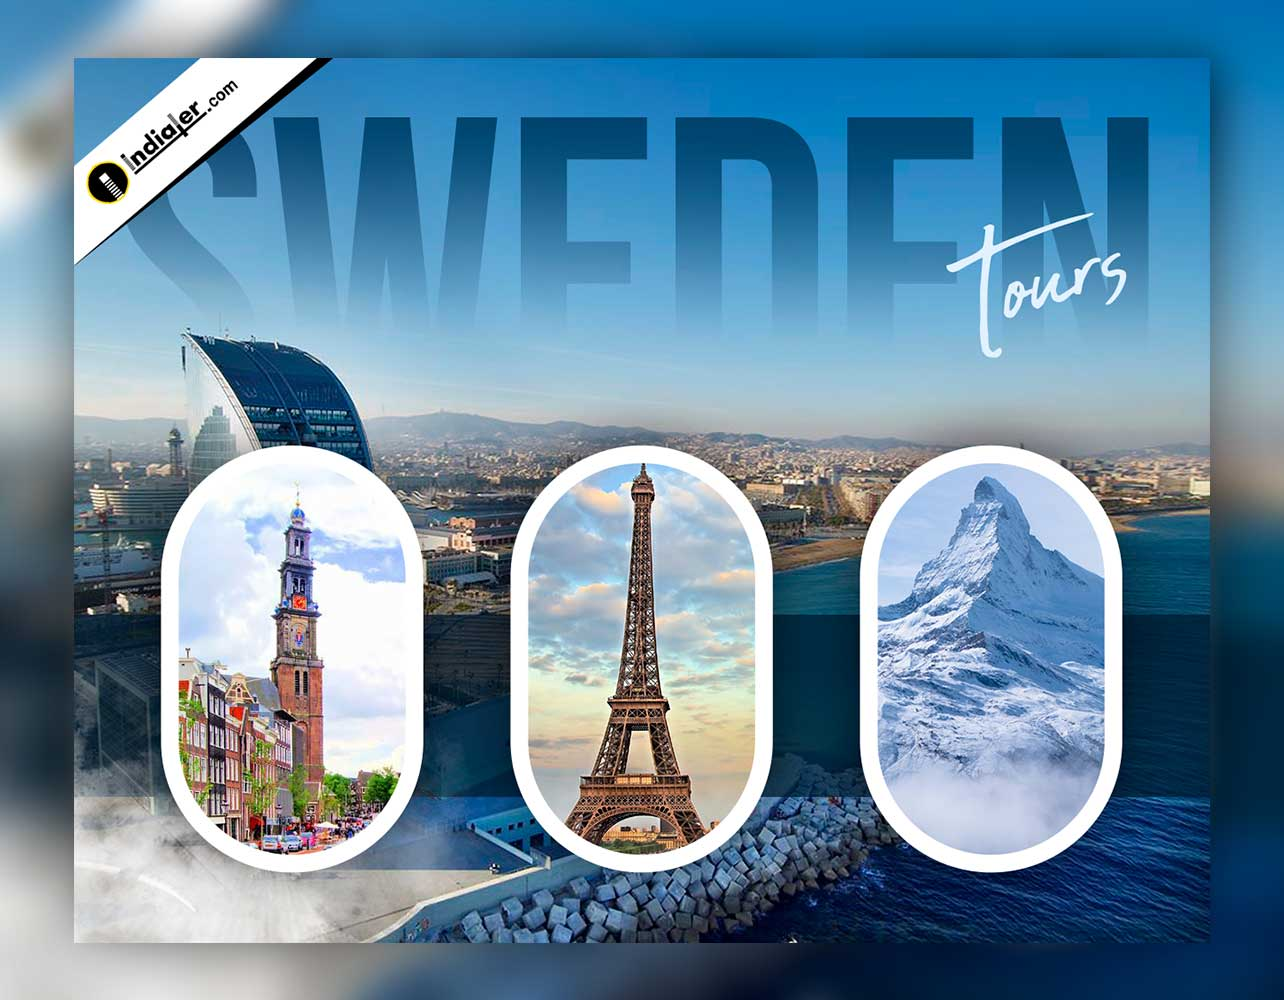 Sweden Travel flyer Design PSD Template